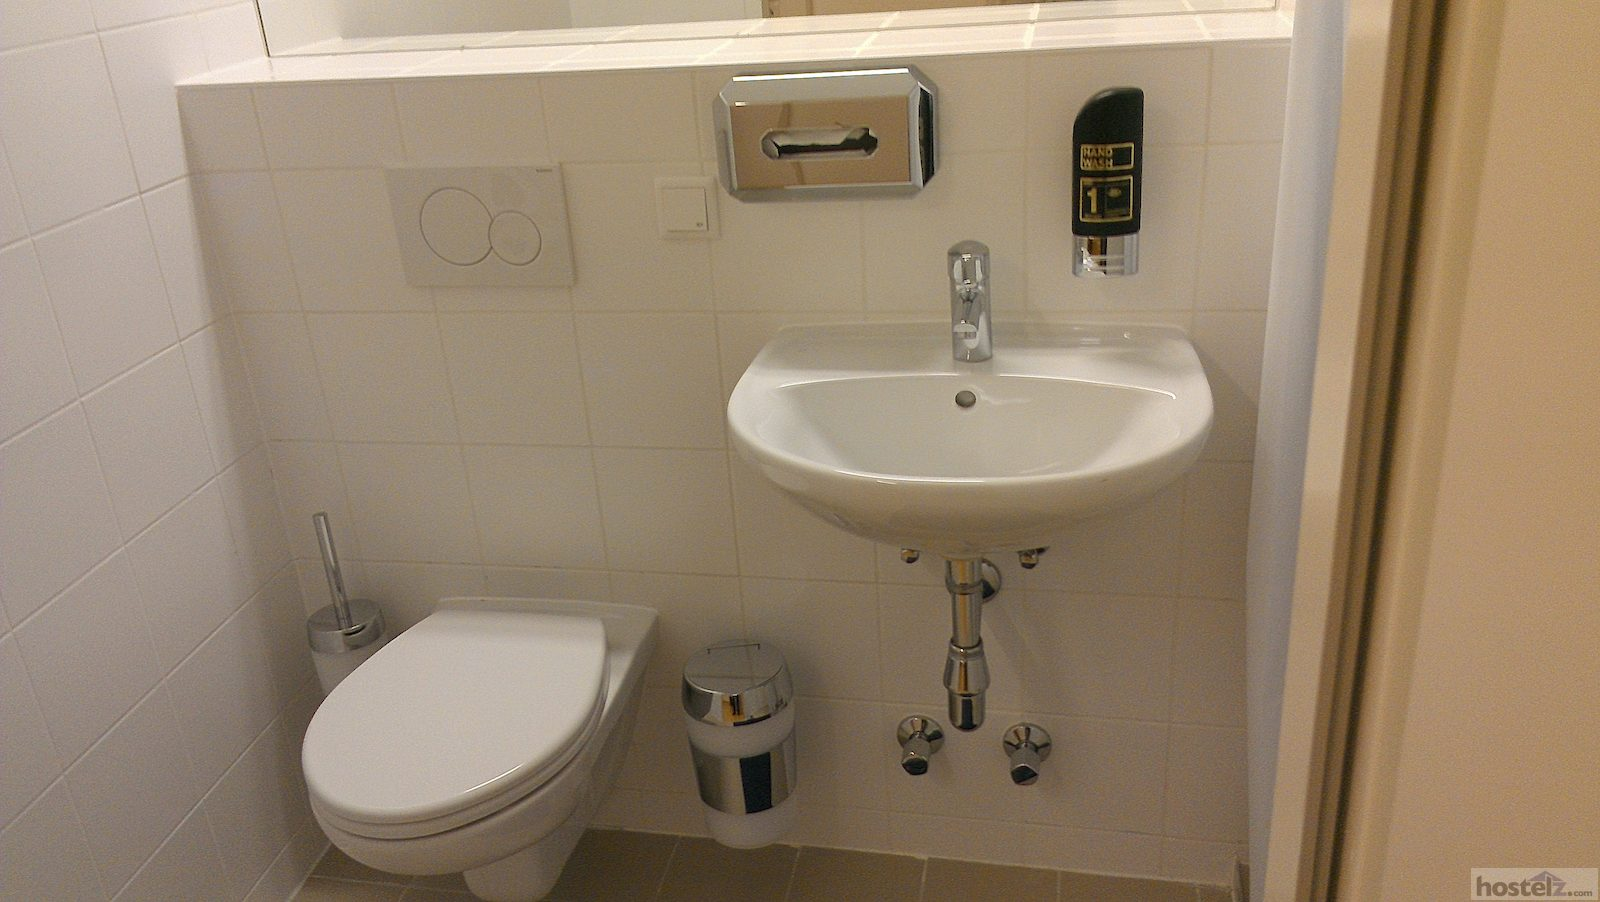 sink and toilet, in bathroom, in room